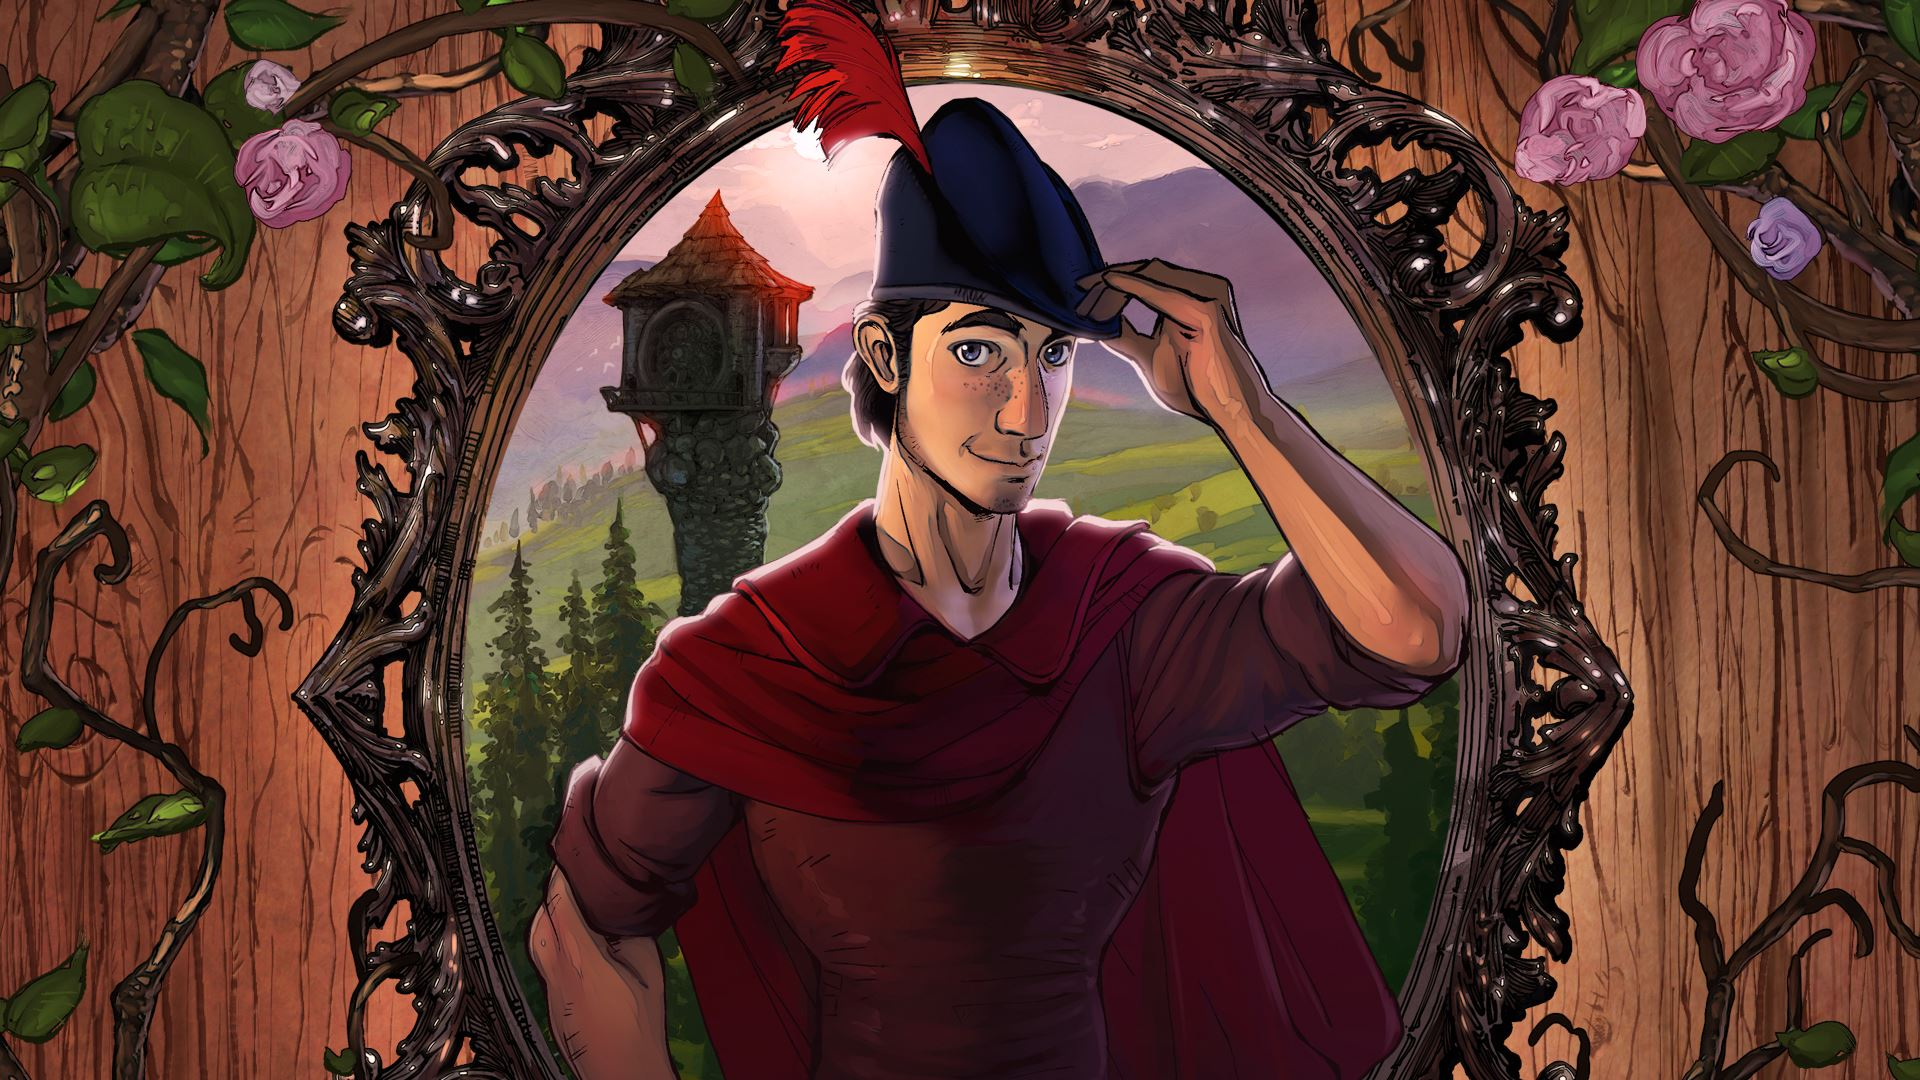 King's Quest Chapter 3 Sierra